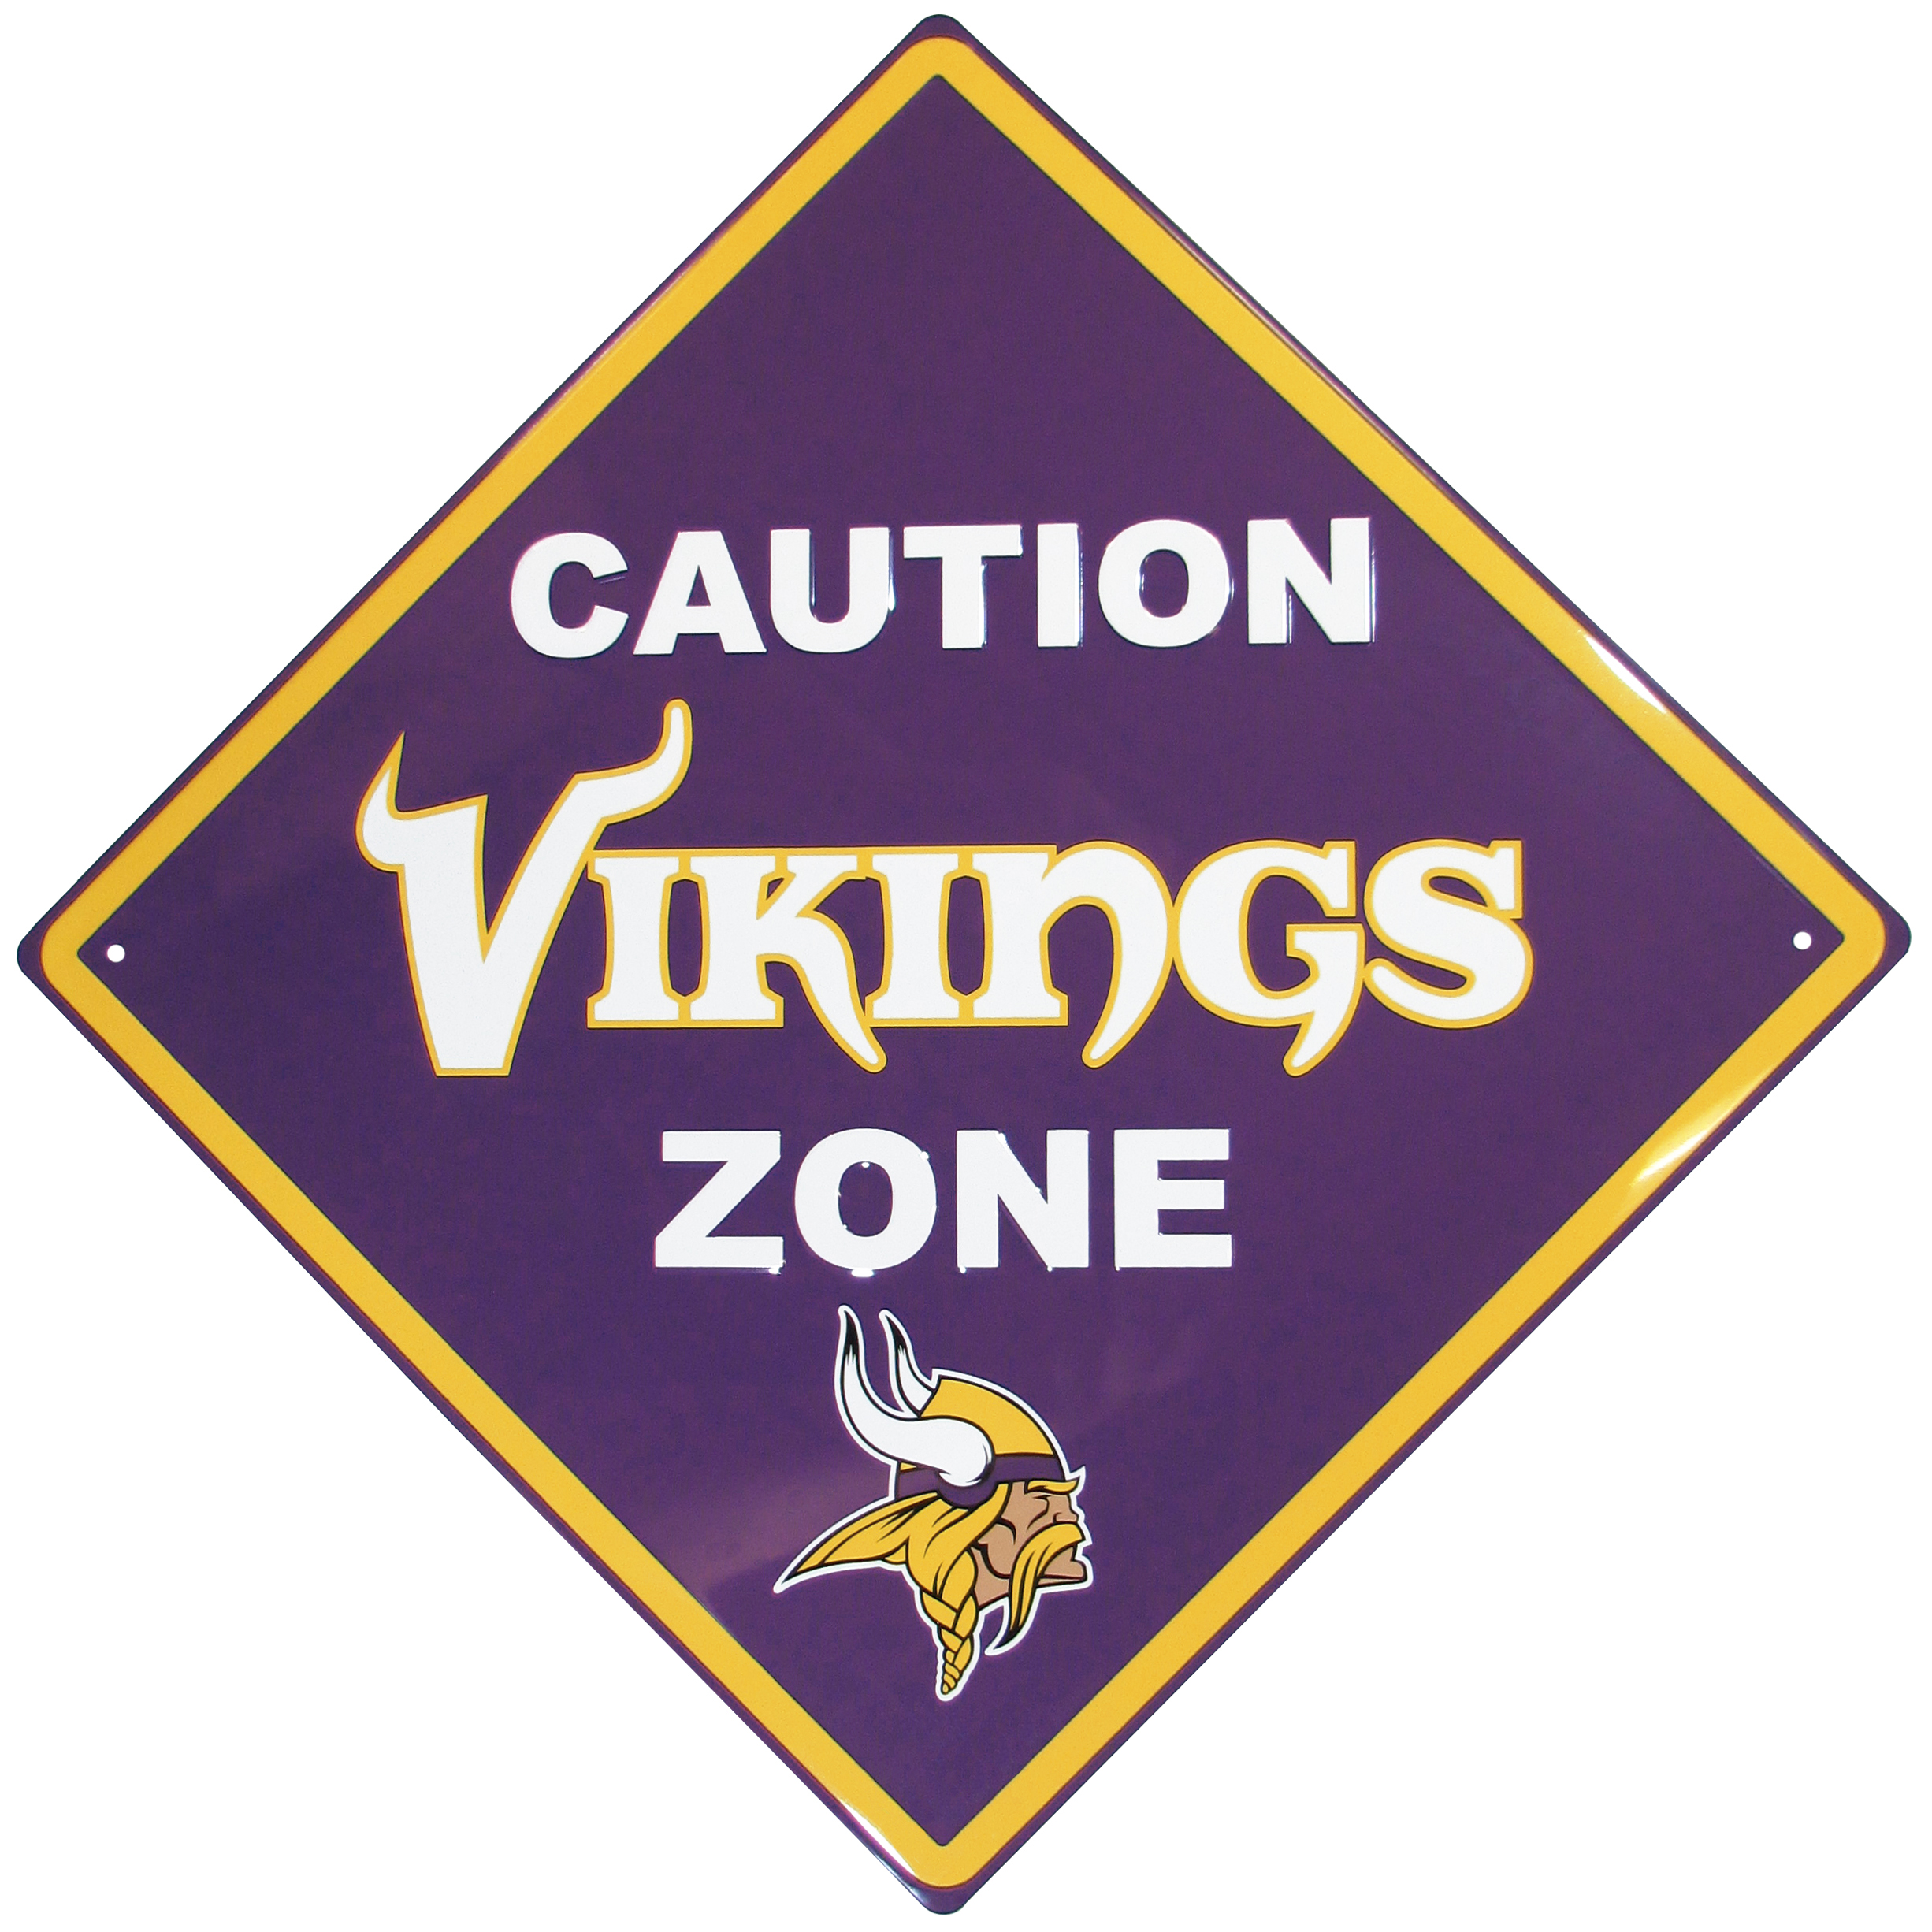 Minnesota Vikings Caution Wall Sign Plaque - Let everyone know that they are entering Minnesota Vikings territory! Our 14 inch caution wall plaques are a the perfect way to convert any room into a fan cave! The light-weight aluminum signs mount easily to any wall and are perfect for the home or office.